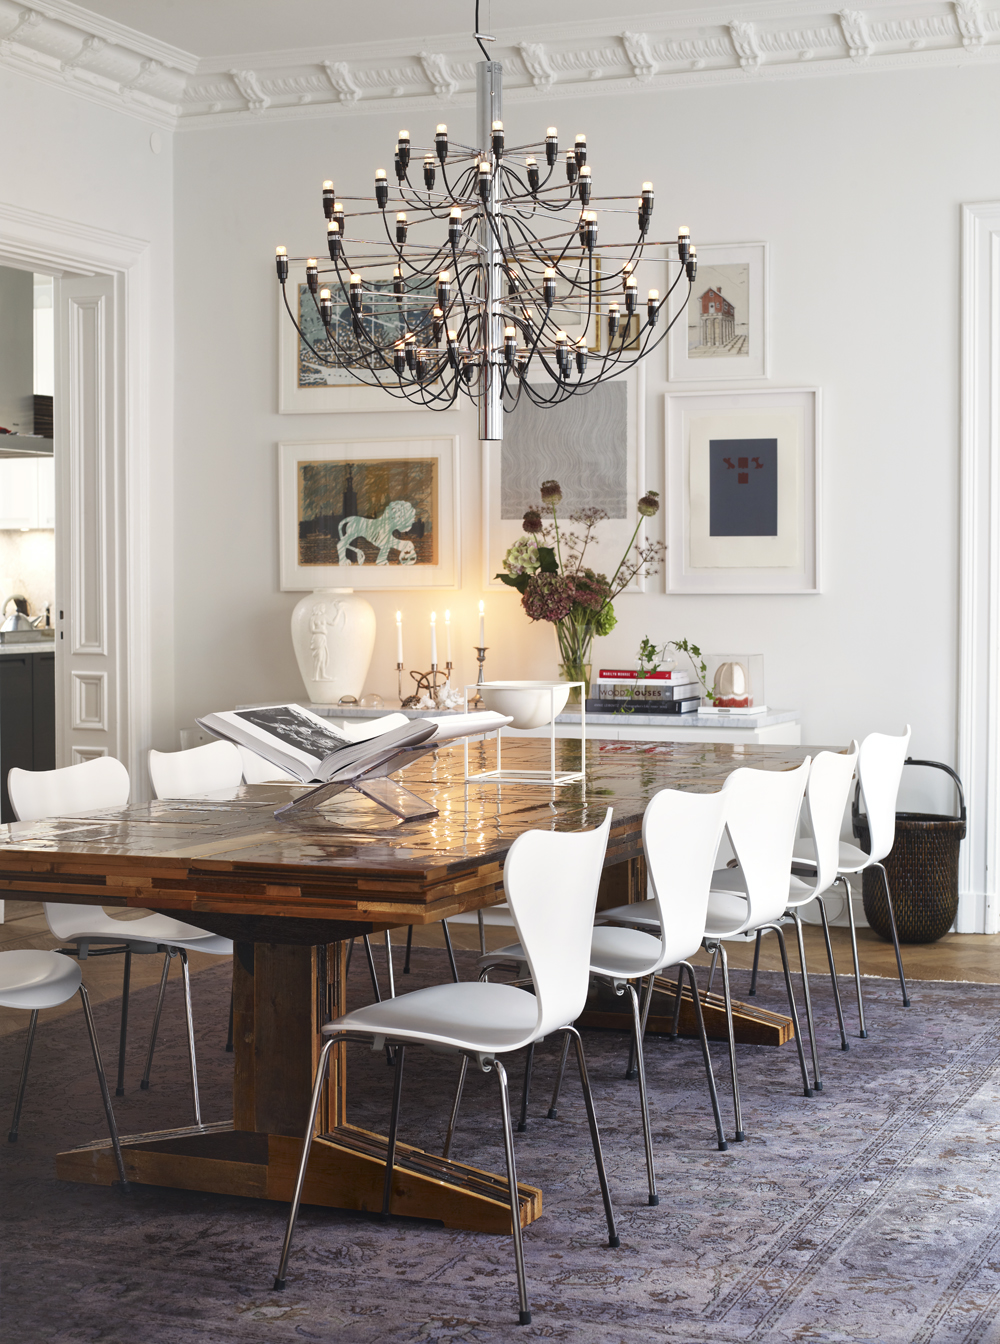 7 Summer-Ready Luxury Dining Rooms To Inspire You 04 luxury dining rooms 7 Summer-Ready Luxury Dining Rooms To Inspire You 7 Summer Ready Luxury Dining Rooms To Inspire You 04